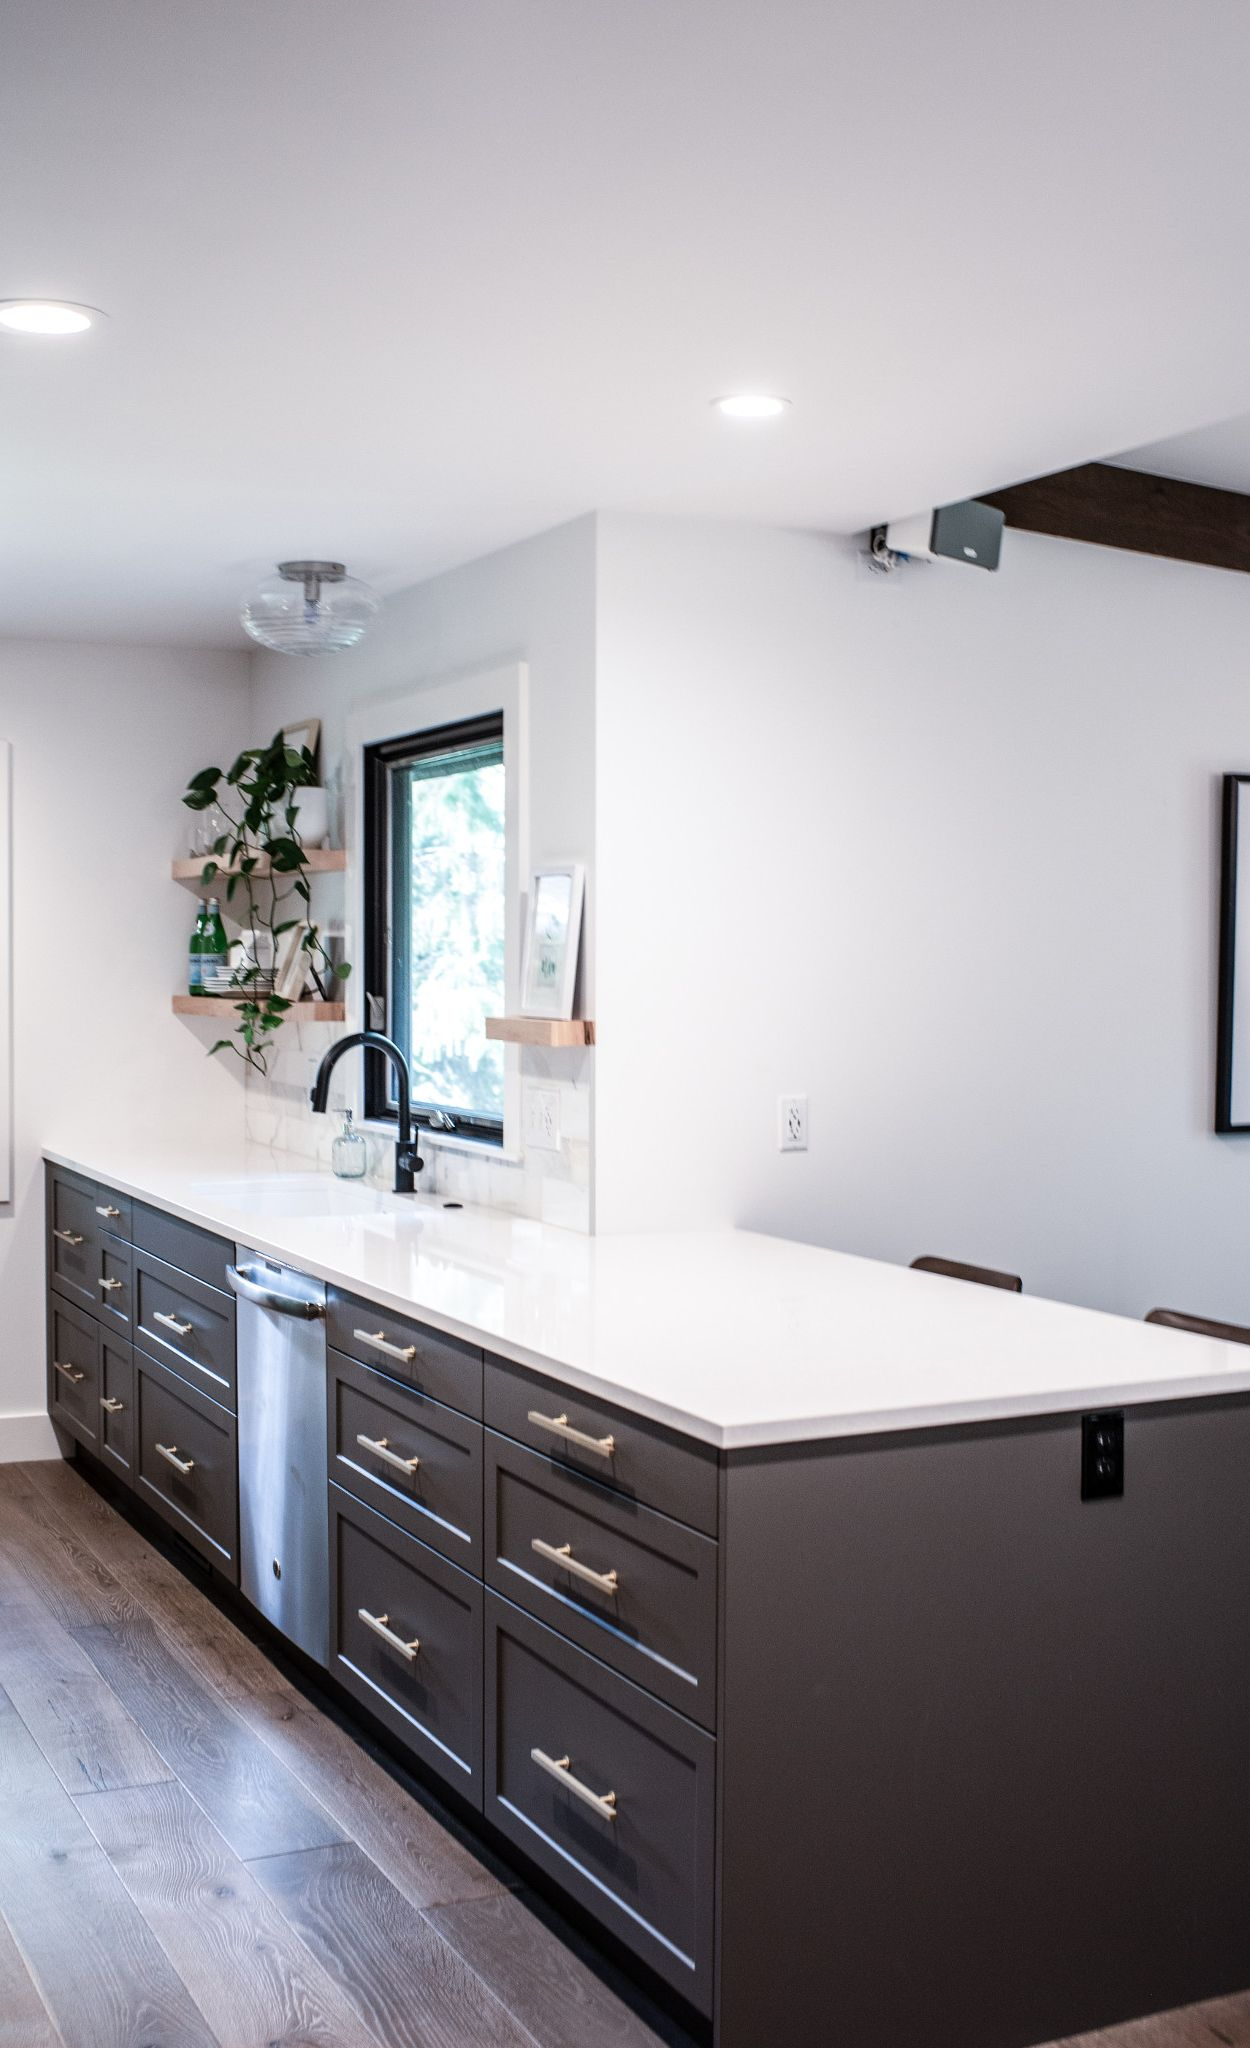 Cambria Newport paired with marble backsplash tile.